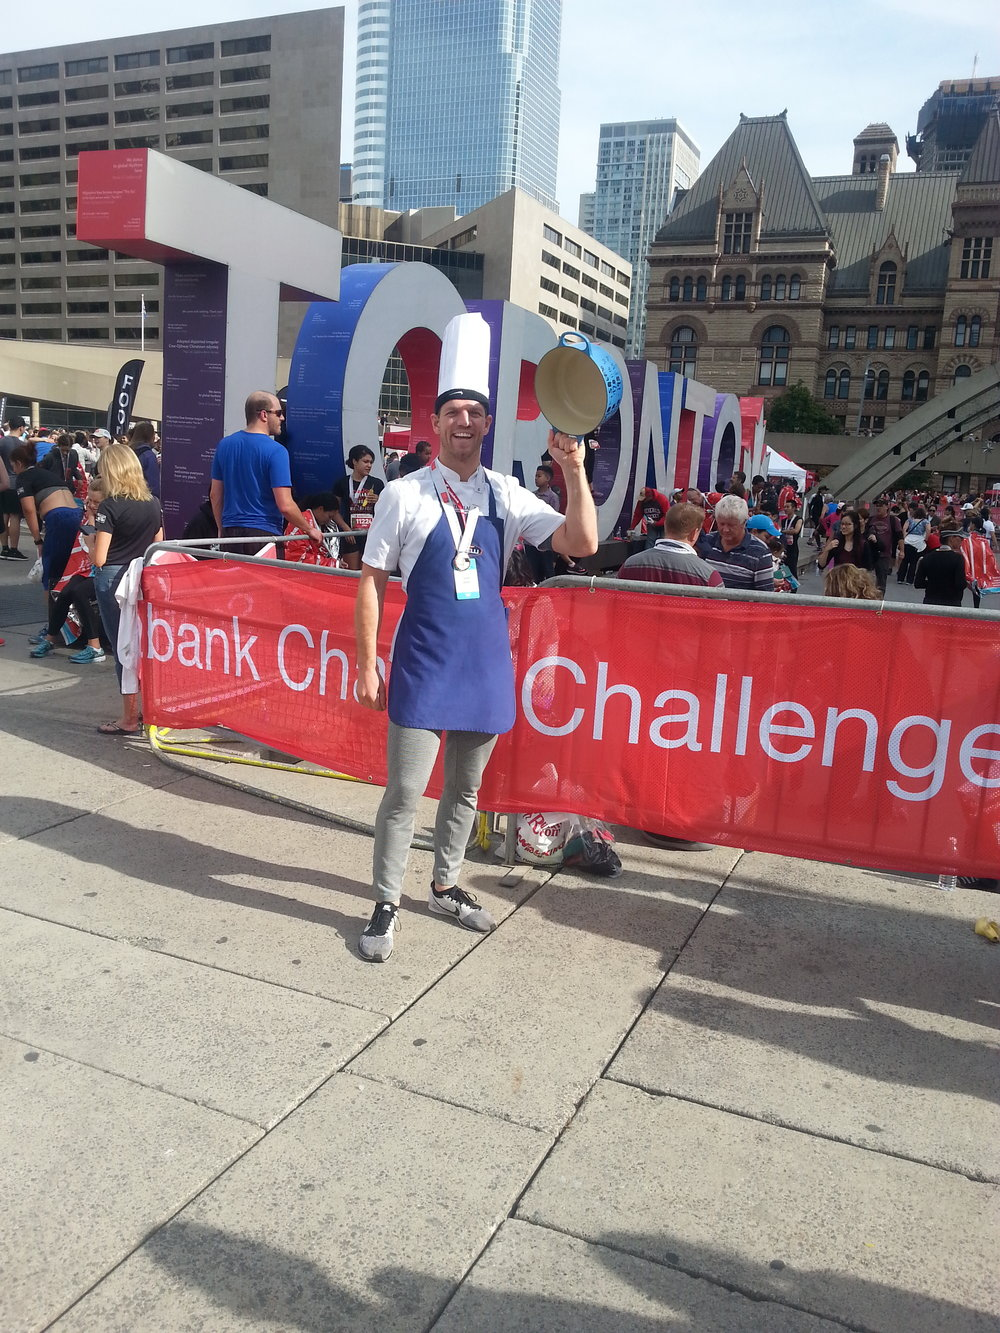 Daniel Janetos at the 2017 Scotiabank Toronto Waterfront Marathon, where he beat the Guinness World Record for fastest half-marathon dressed as a chef carrying a 3 kg pot!